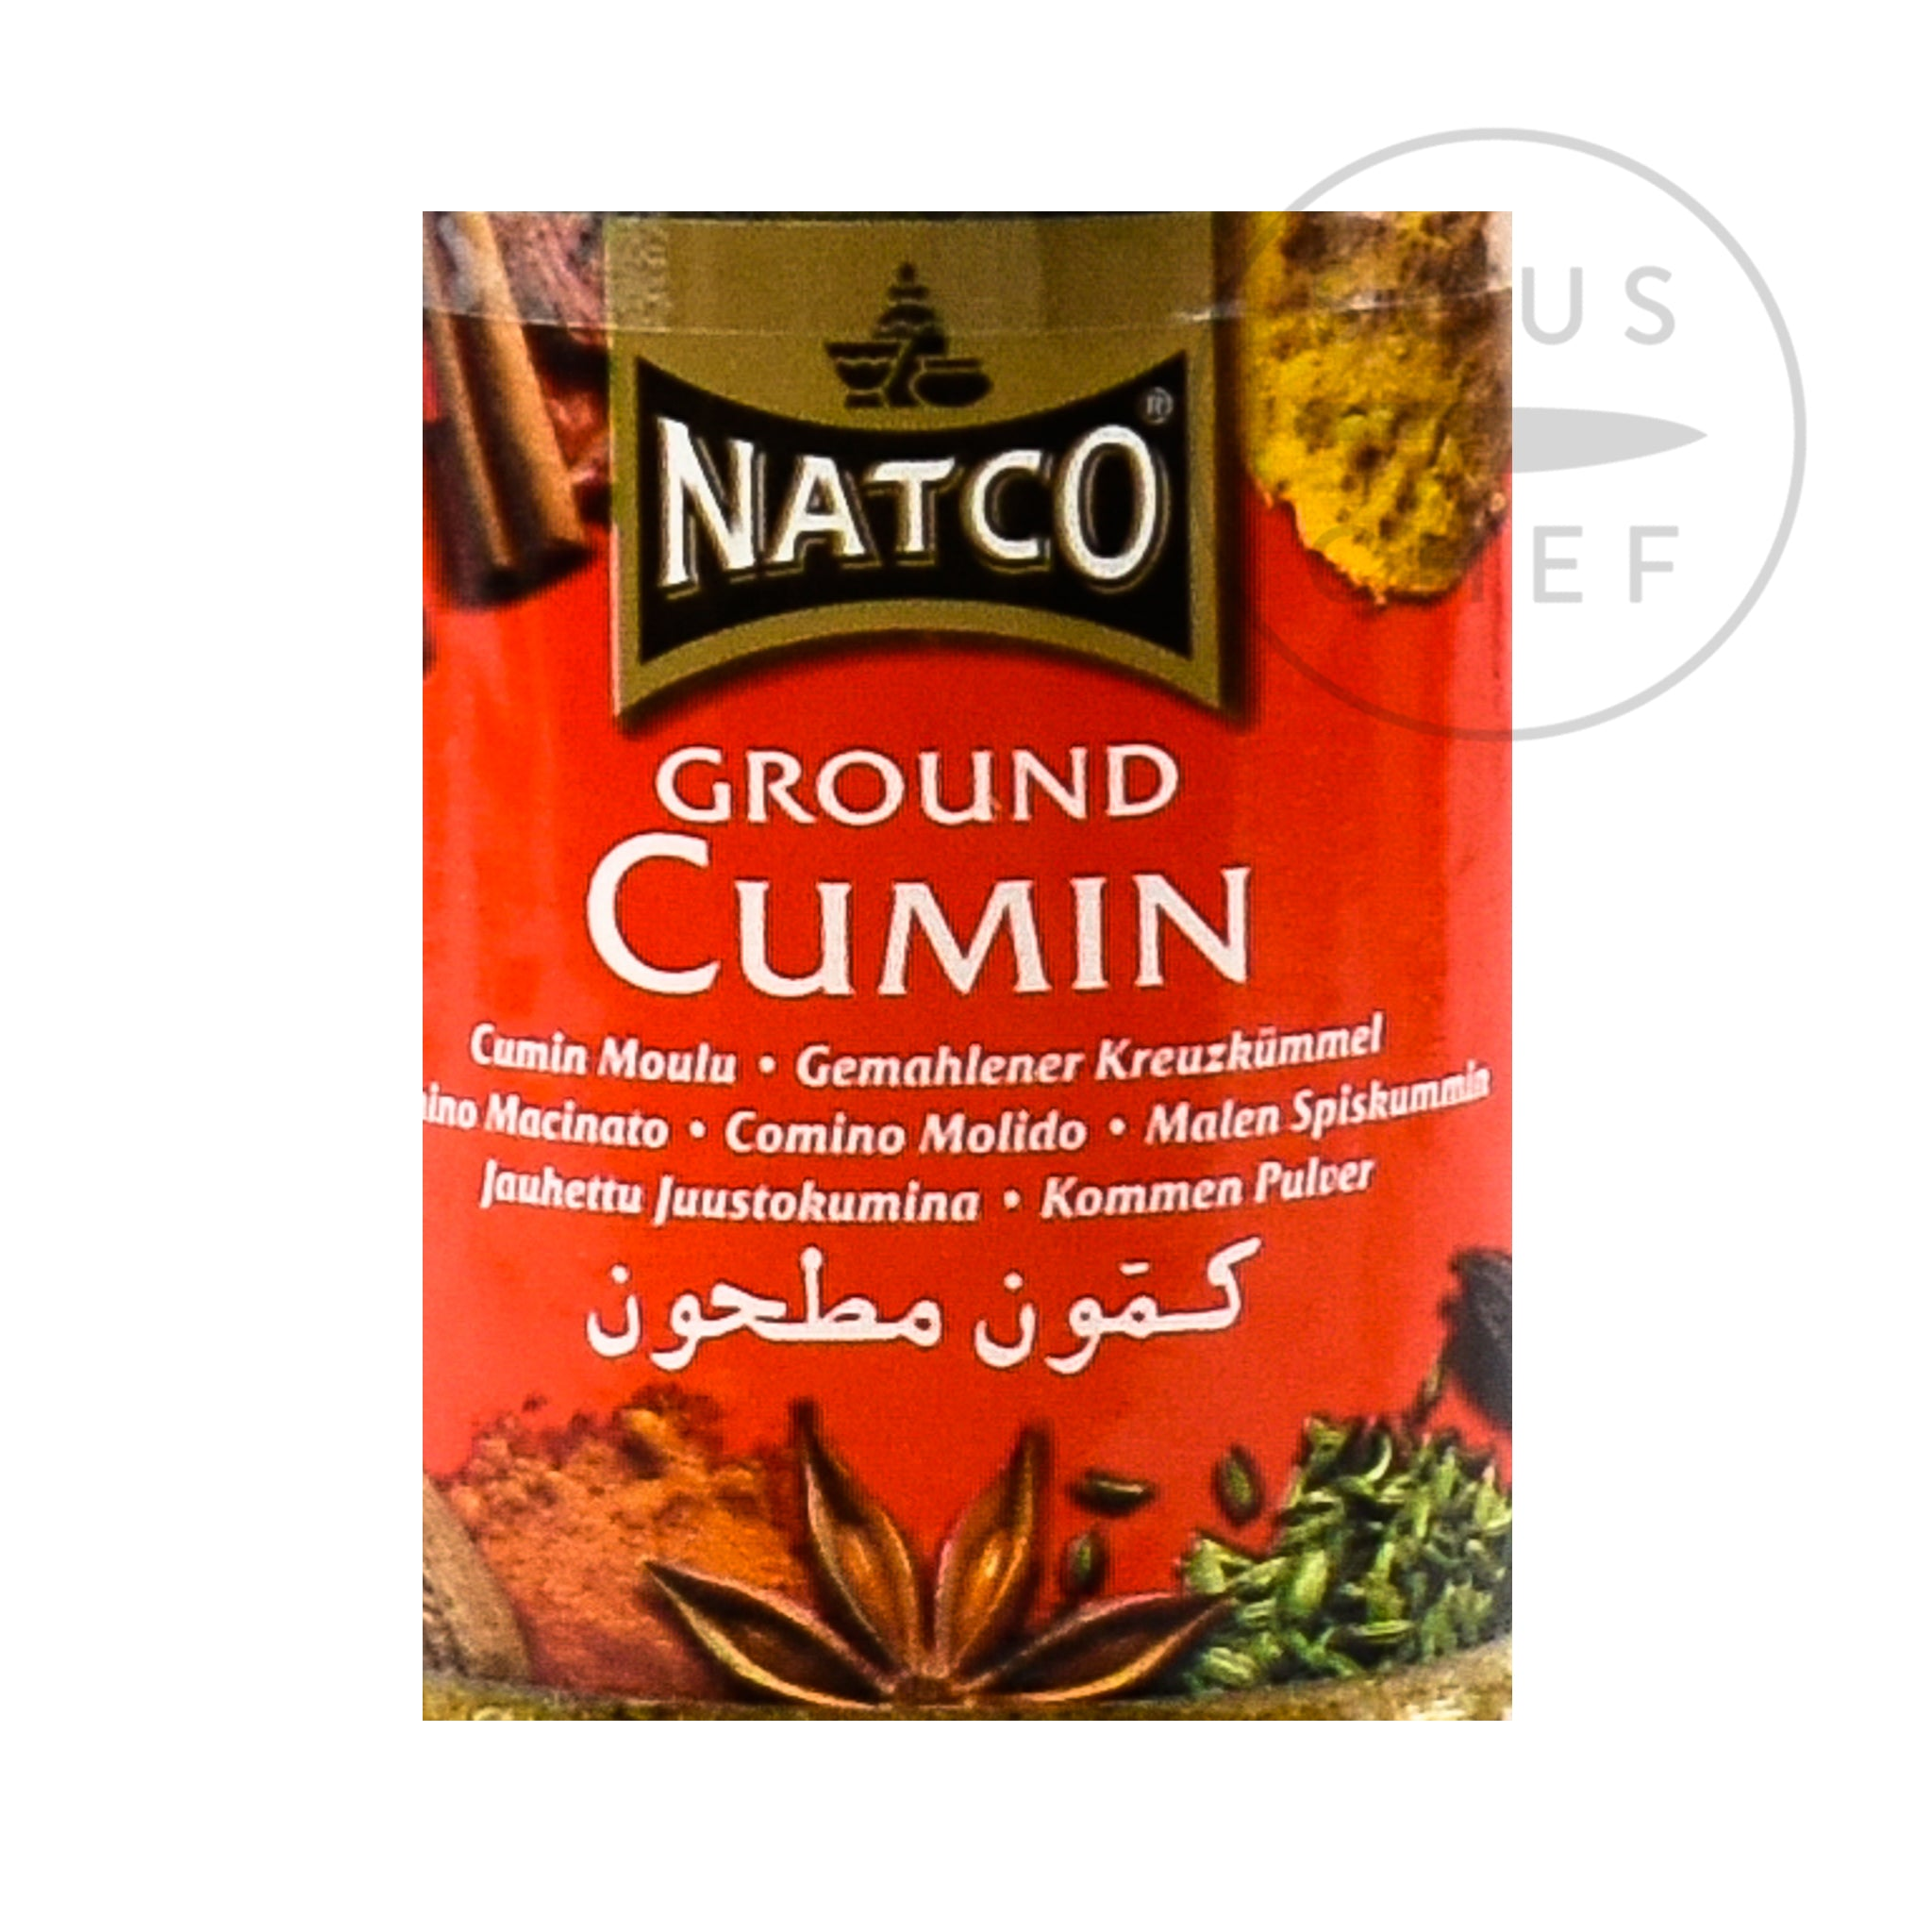 Natco Ground Cumin 70g